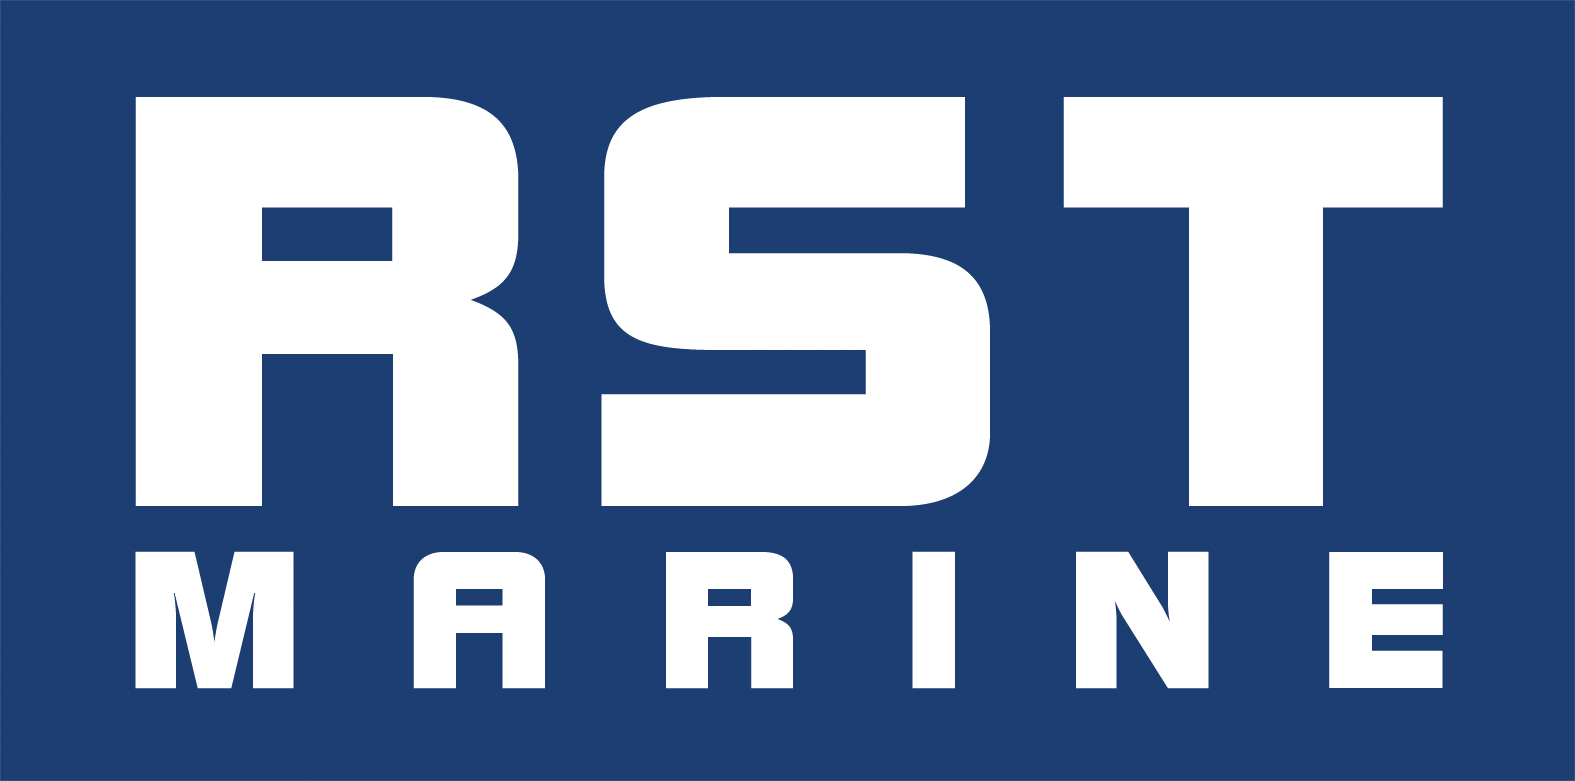 RST Marine Equipment & Engineering Company Limited